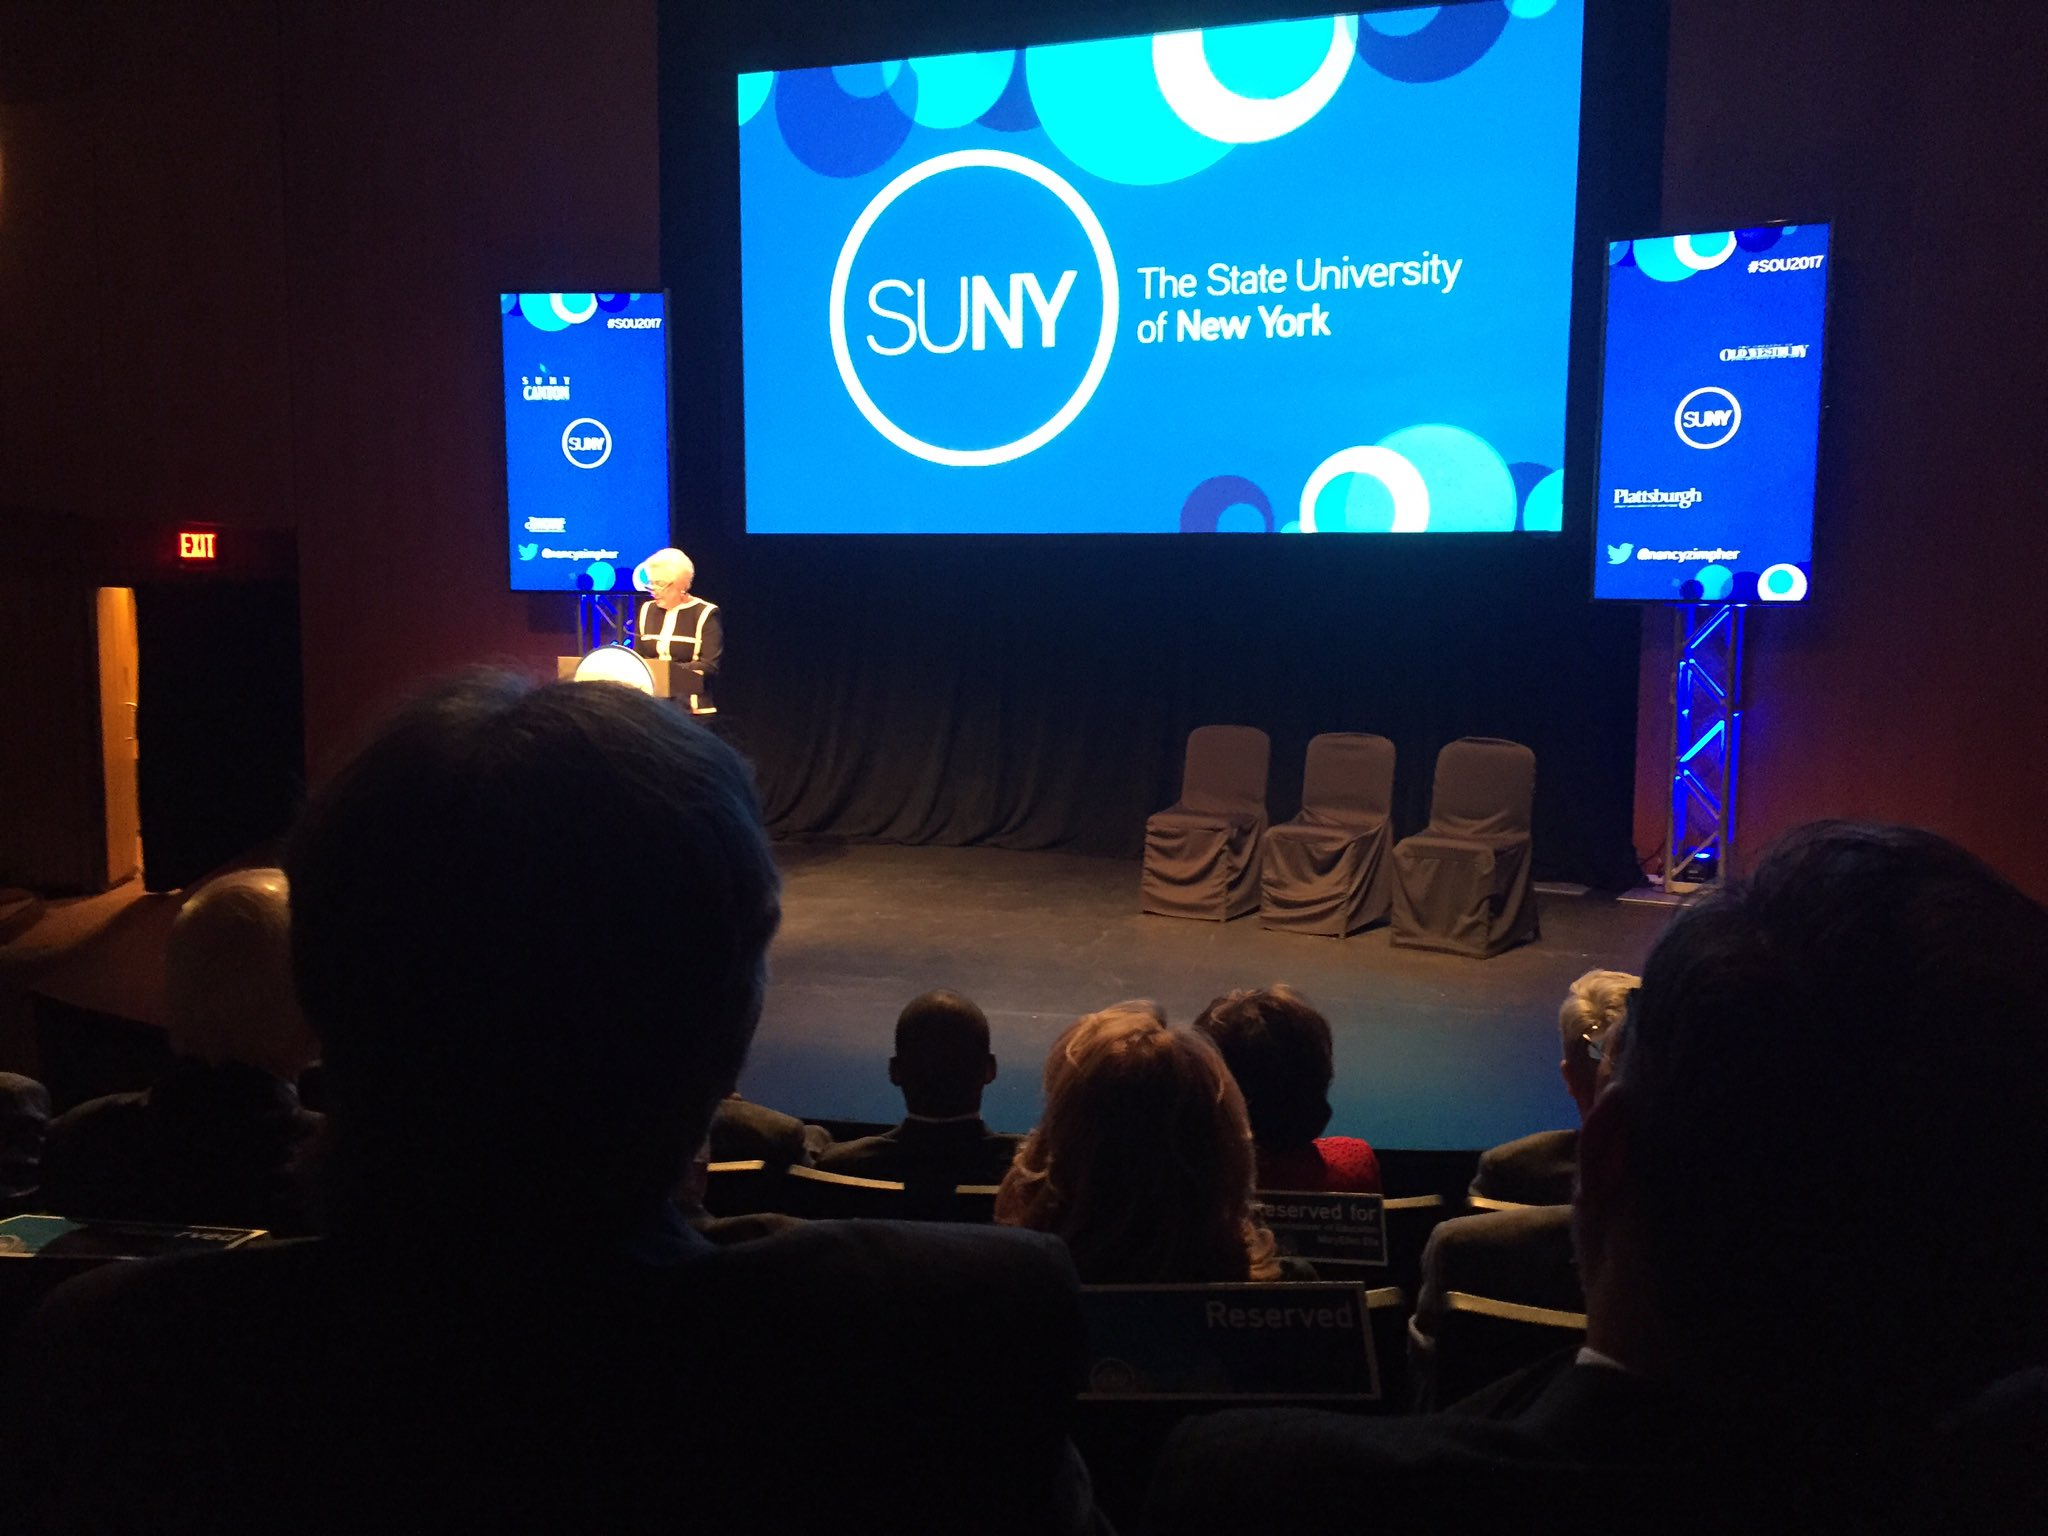 @nancyzimpher takes the stage for her final @SUNY SOU address. Proud to be representing @HudsonValleyCC here! #SOU2017 https://t.co/b2Wz2wyjMN